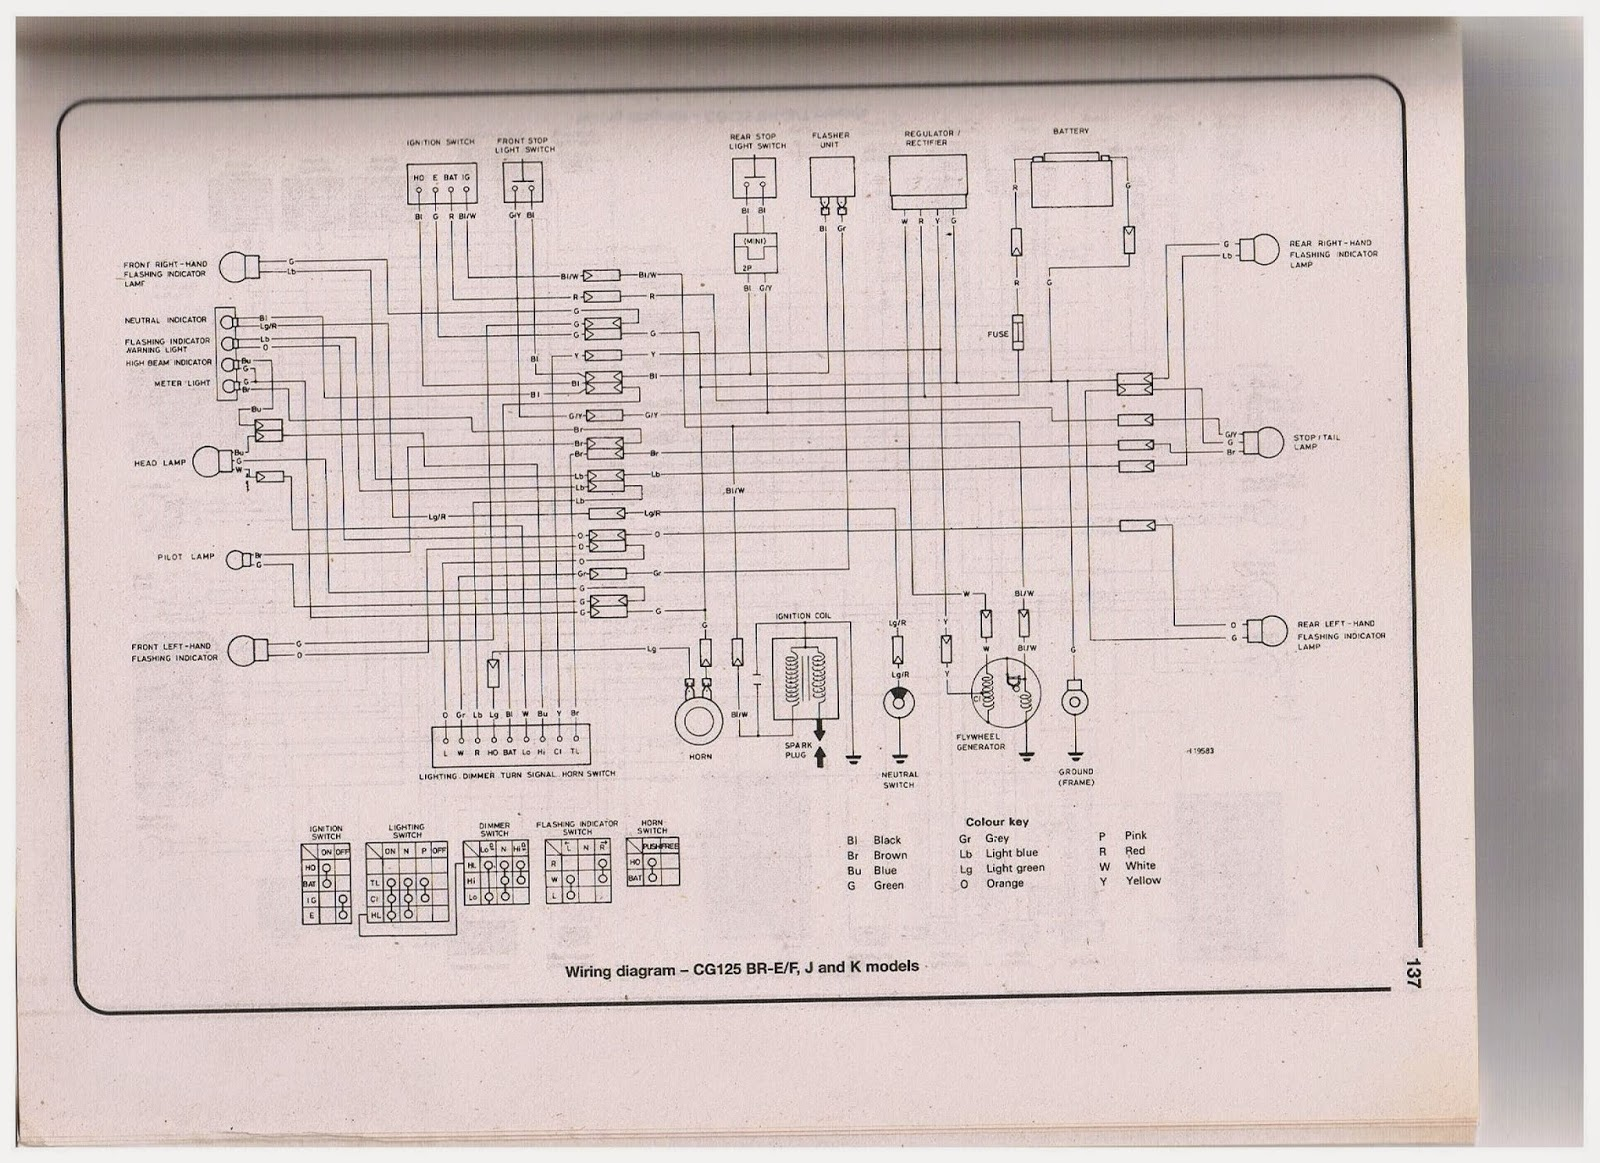 racal motorcycle wiring diagram racal image wiring honda cg 125 owner blog honda cg 125 wiring diagrams and on racal motorcycle wiring diagram